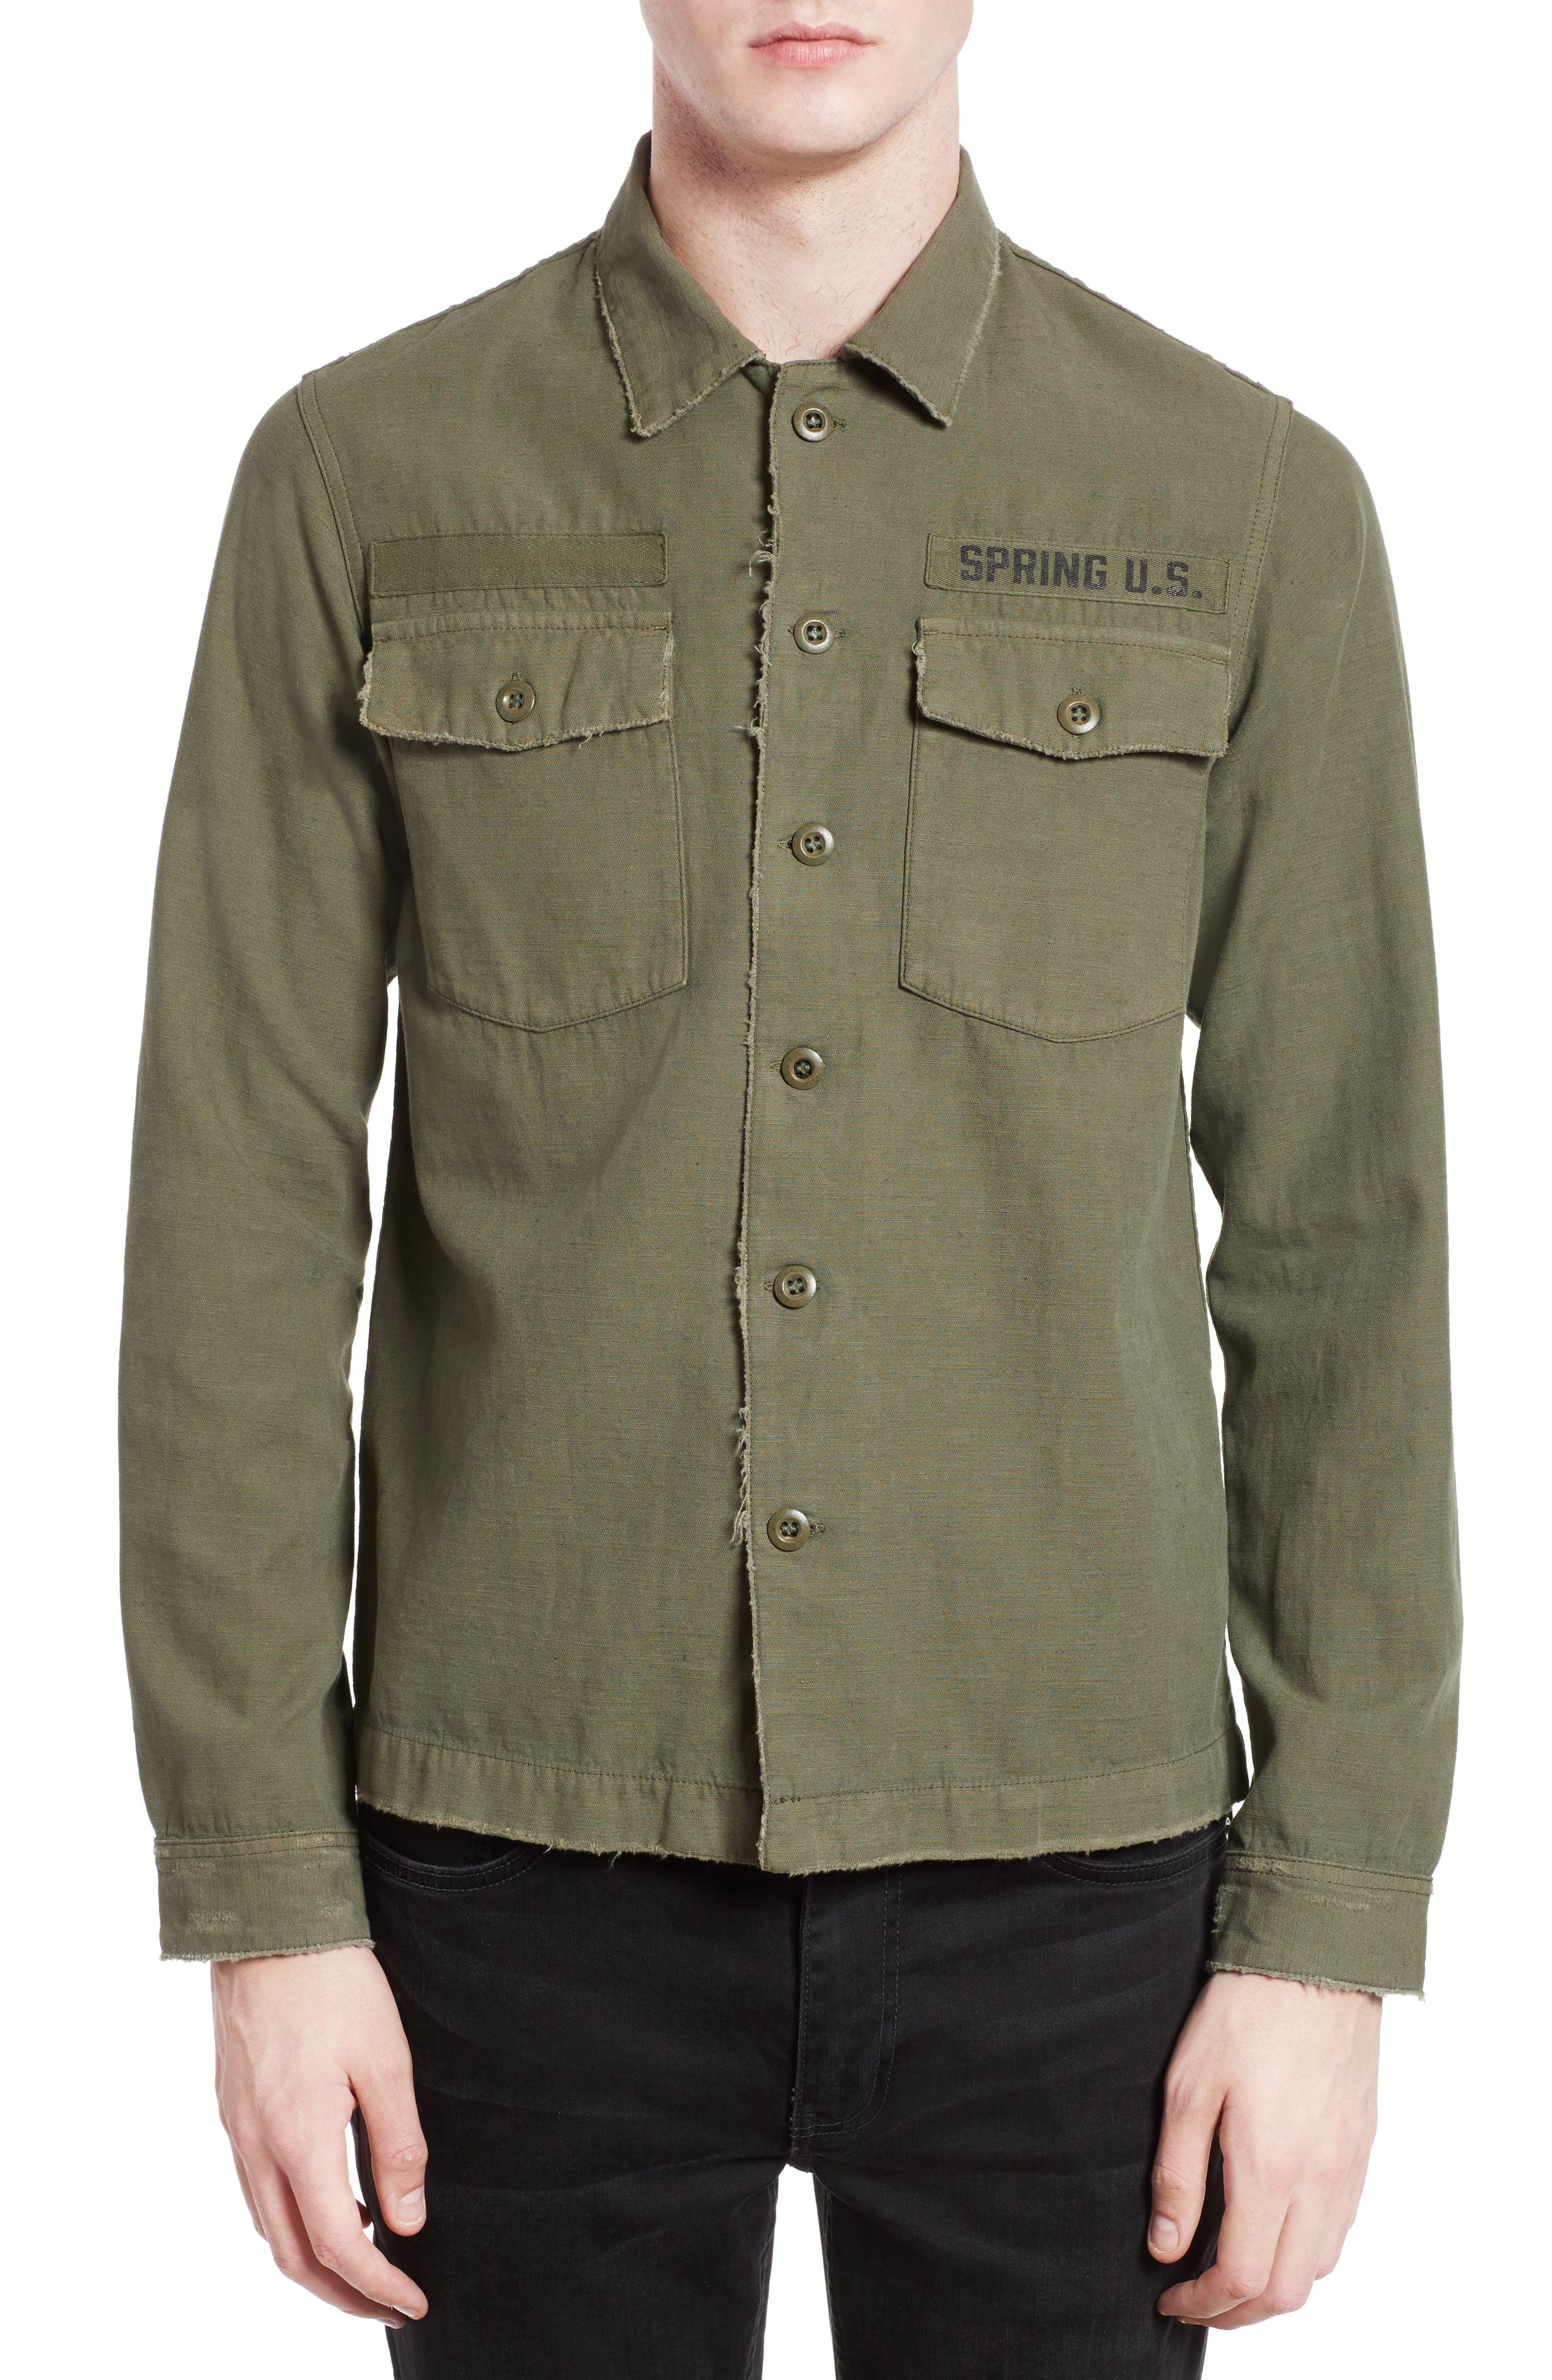 The Kooples Embroidered Abrasion Effect Cotton & Linen Shirt